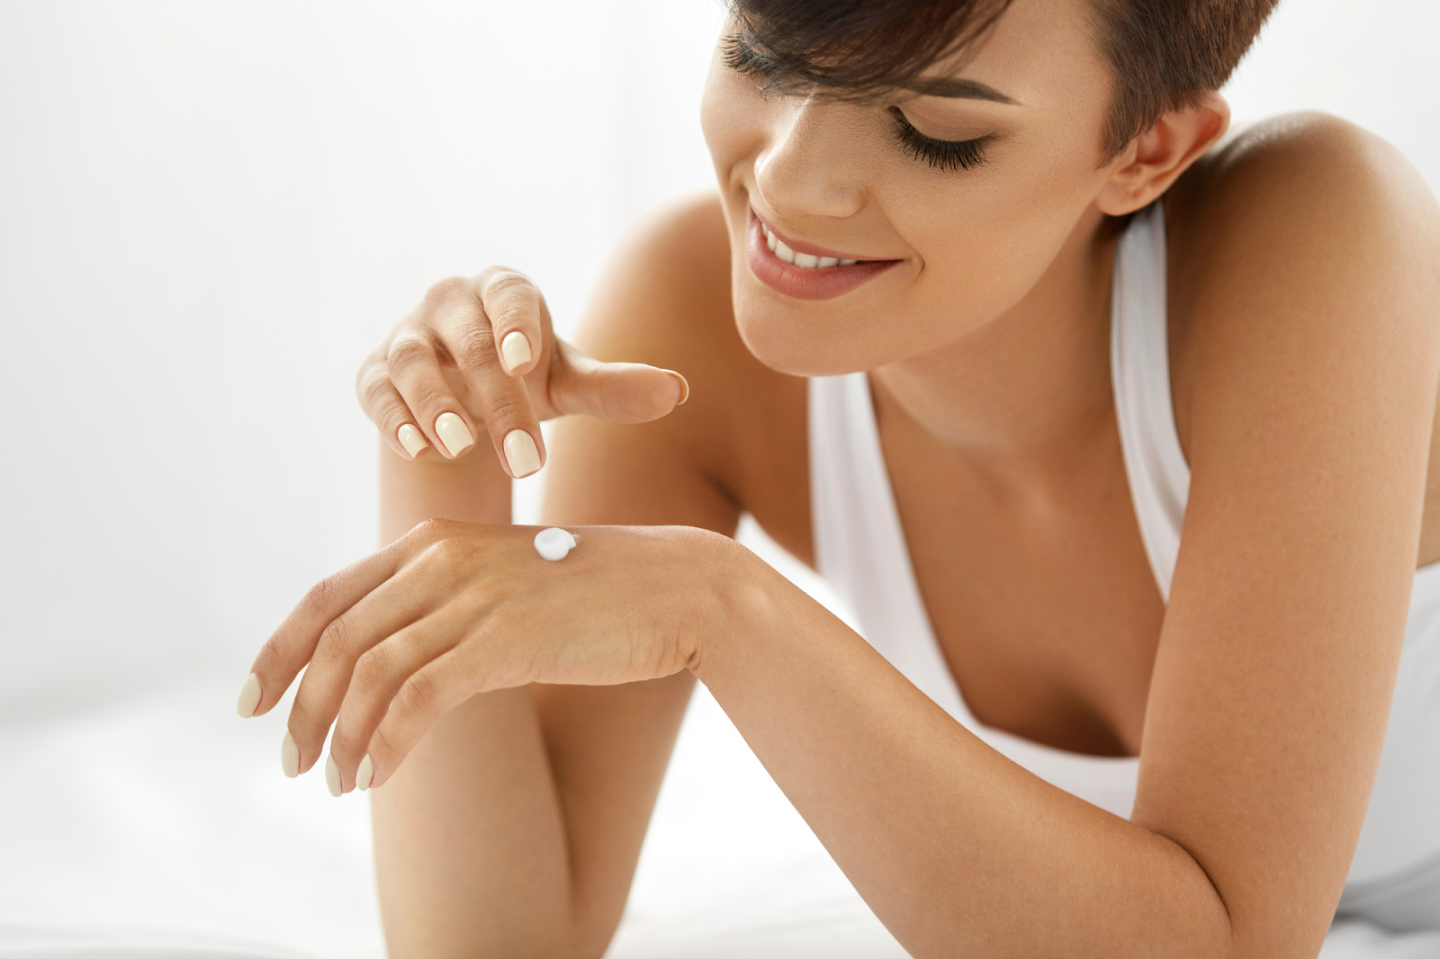 WHAT SKINCARE PRODUCTS CONTAIN SALICYLIC ACID